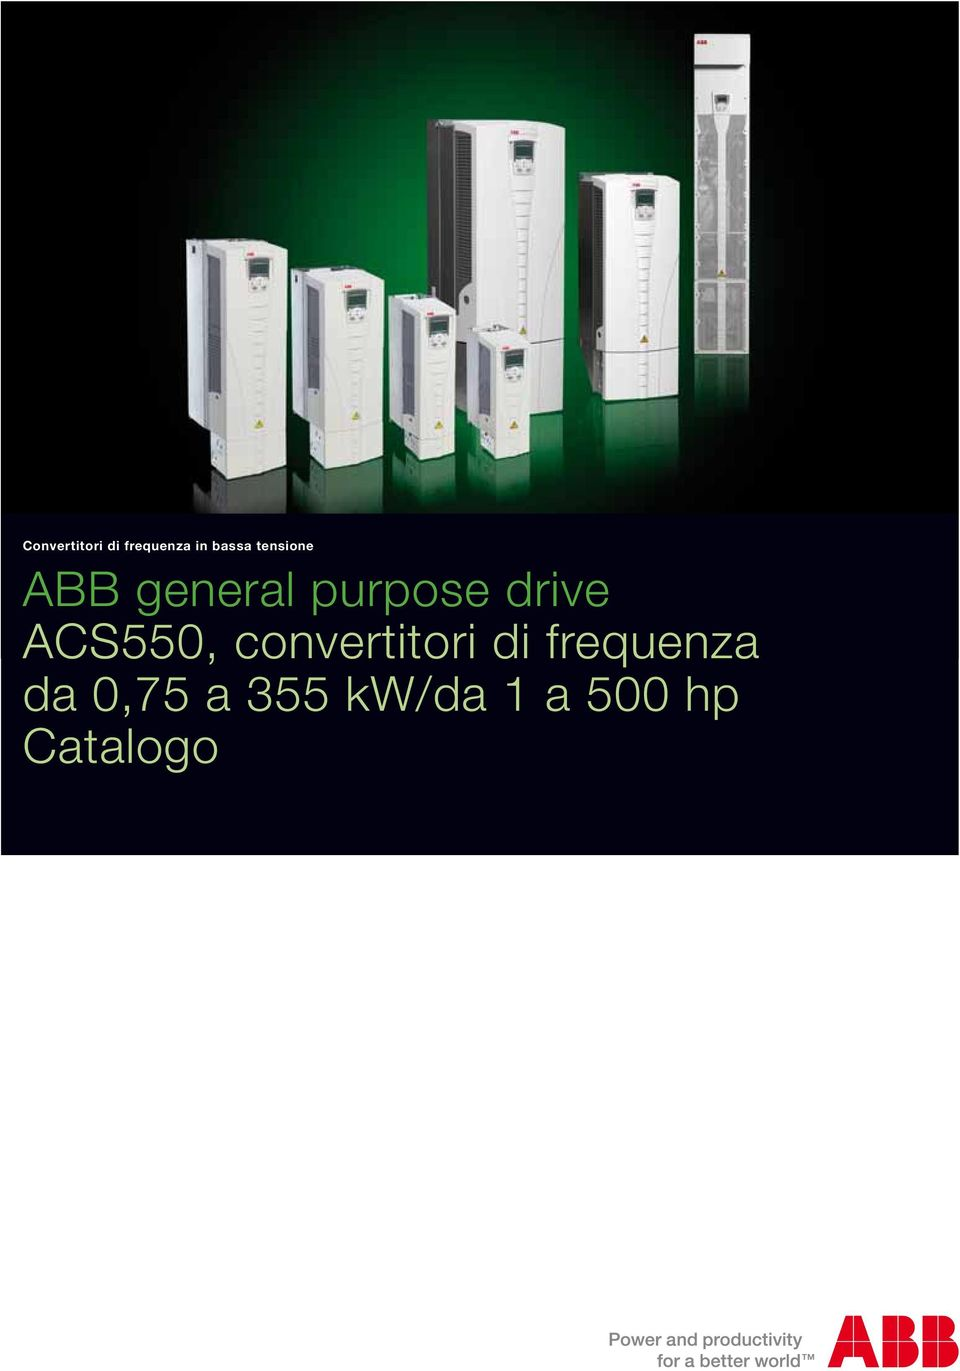 ACS550, convertitori di frequenza